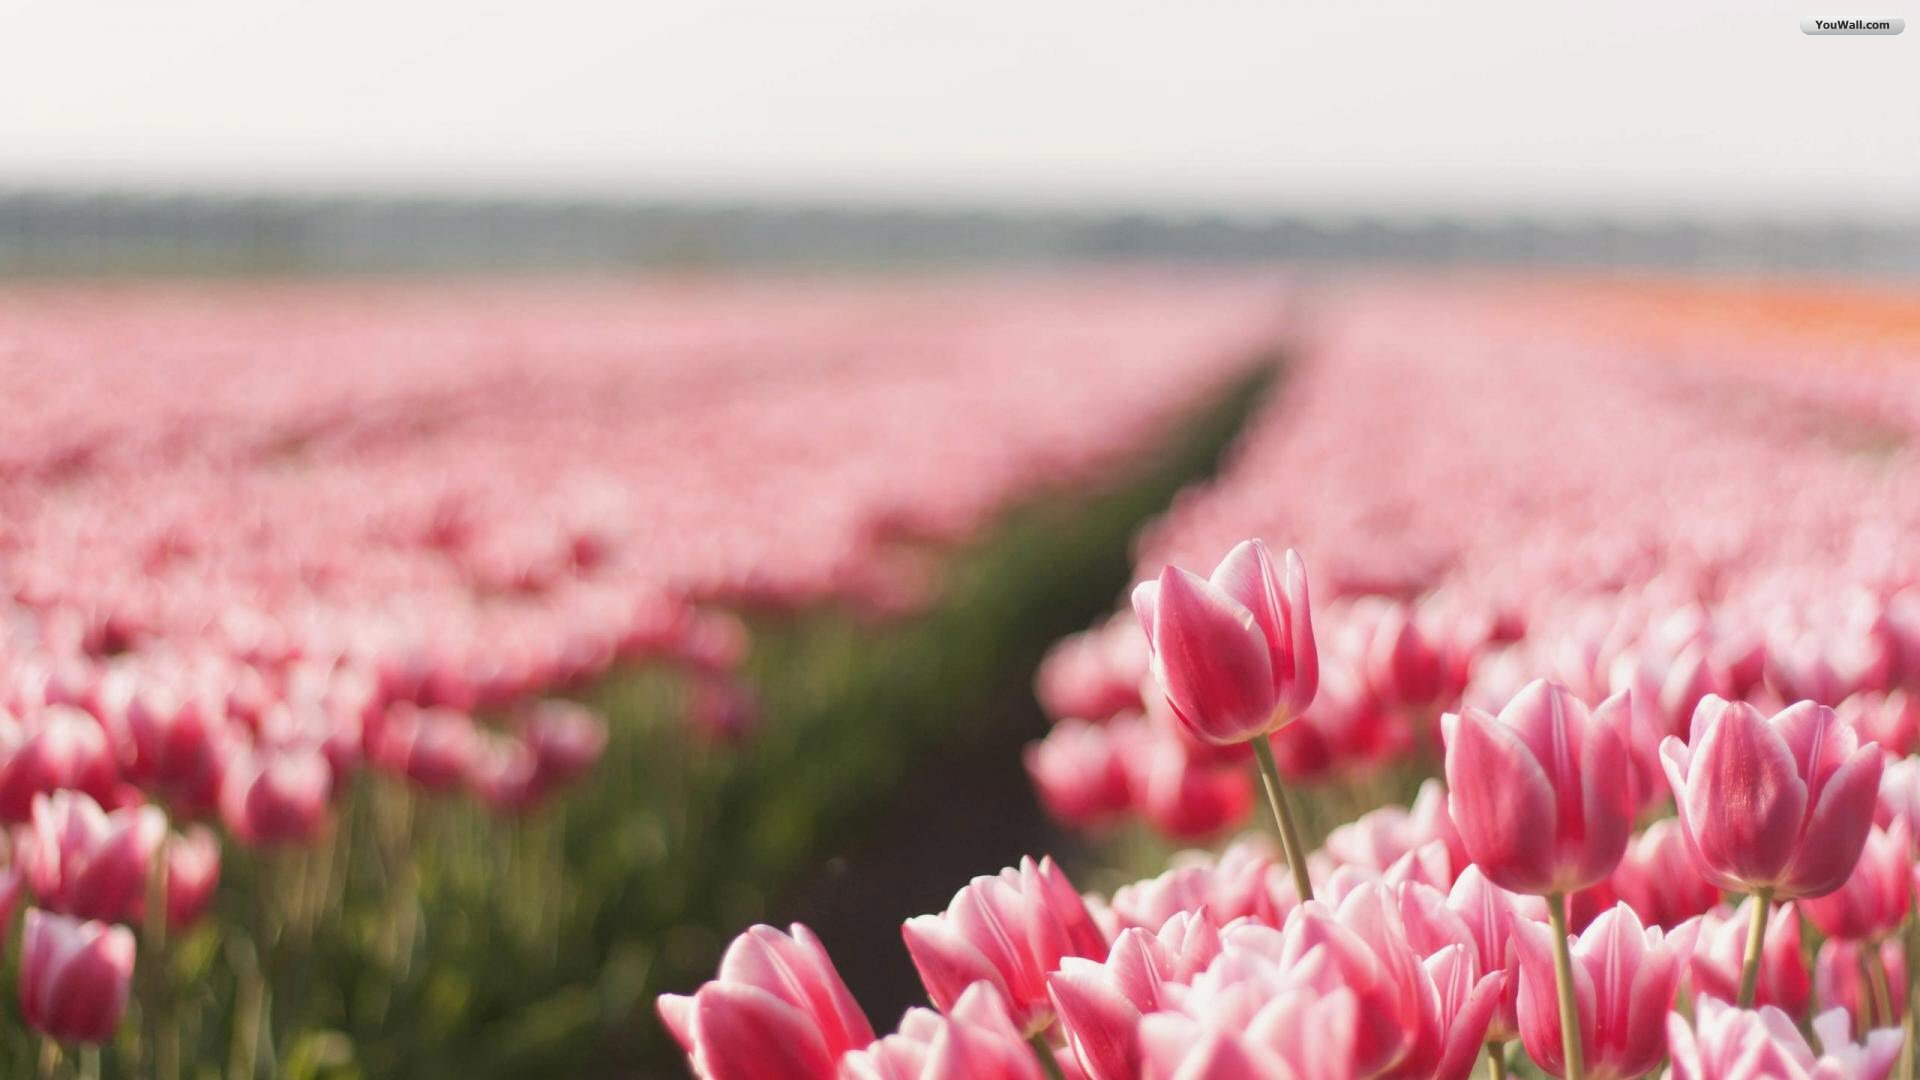 Tulip Fields – Live HD Tulip Fields Wallpapers, Photos